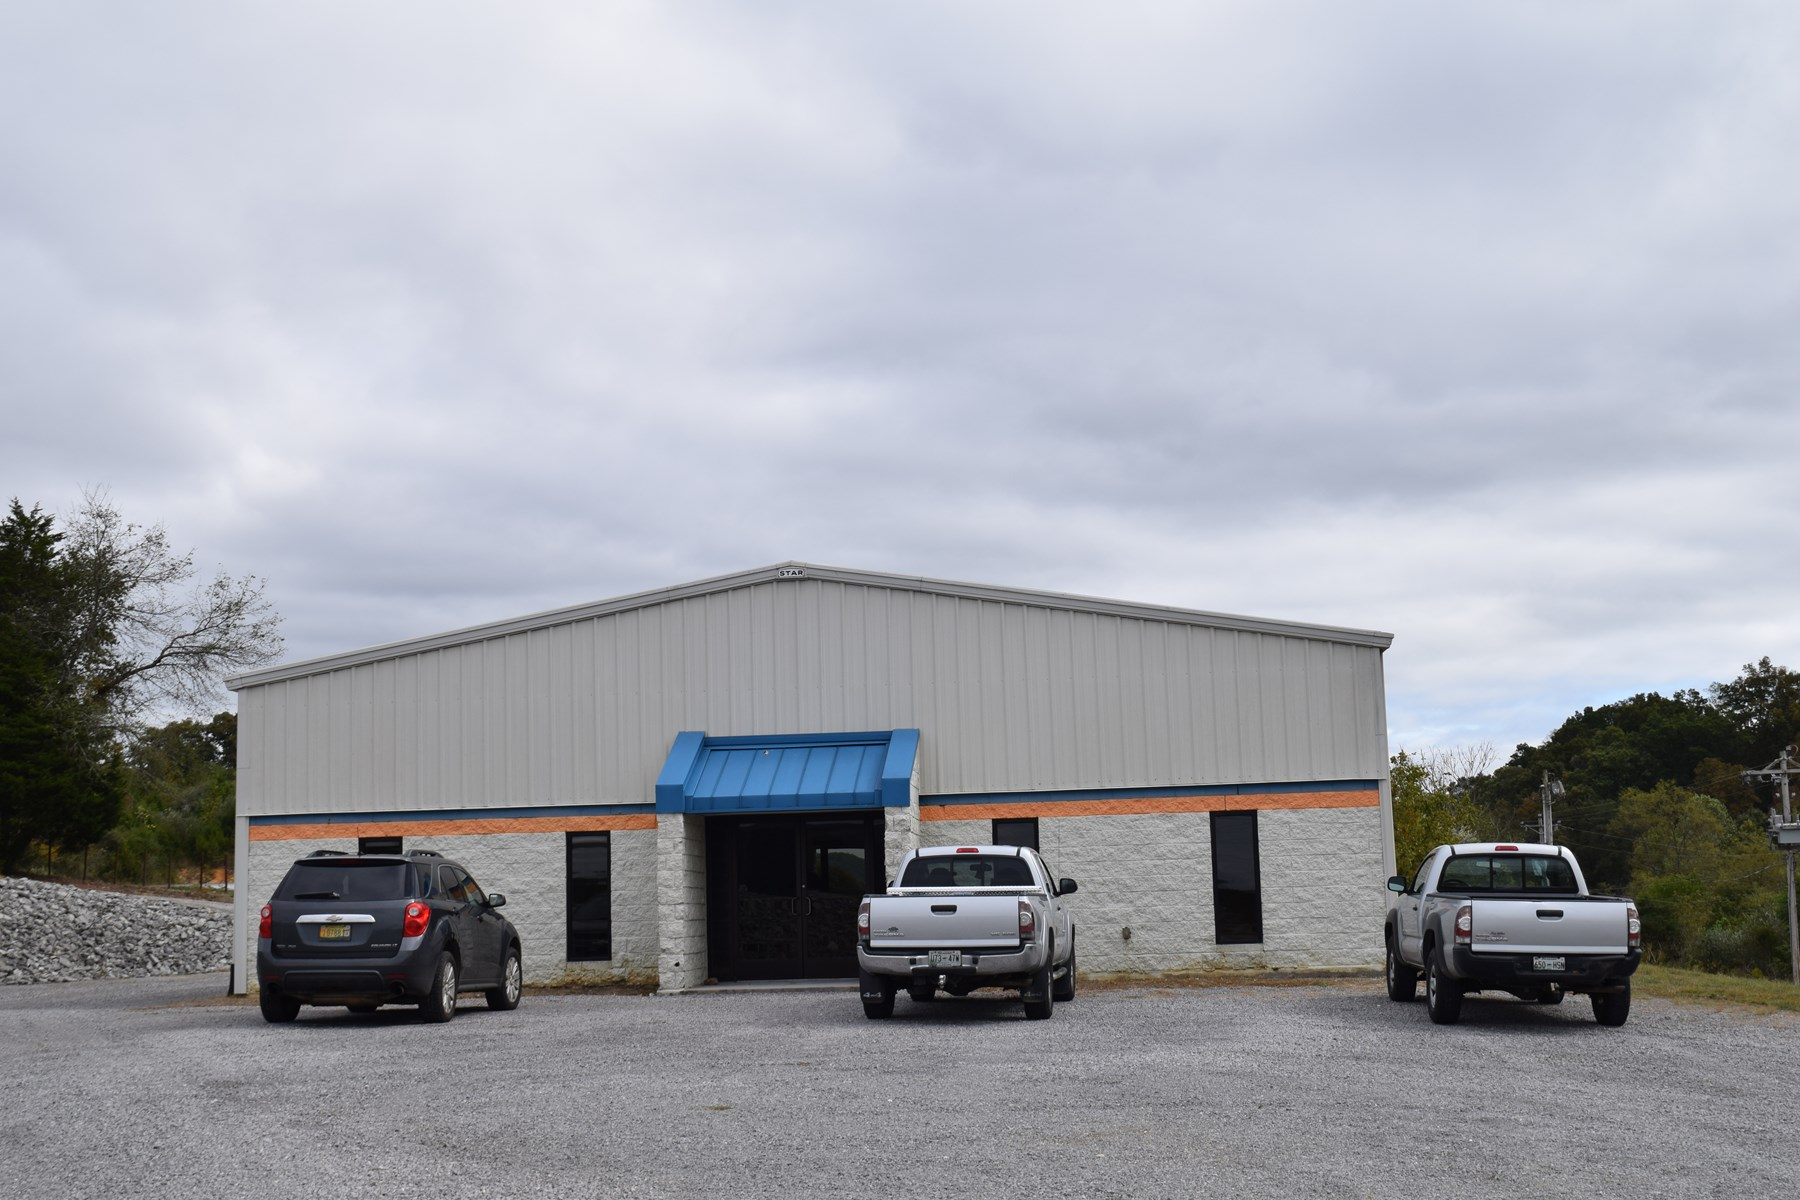 Commercial Building for Sale Harrogate TN Claiborne County